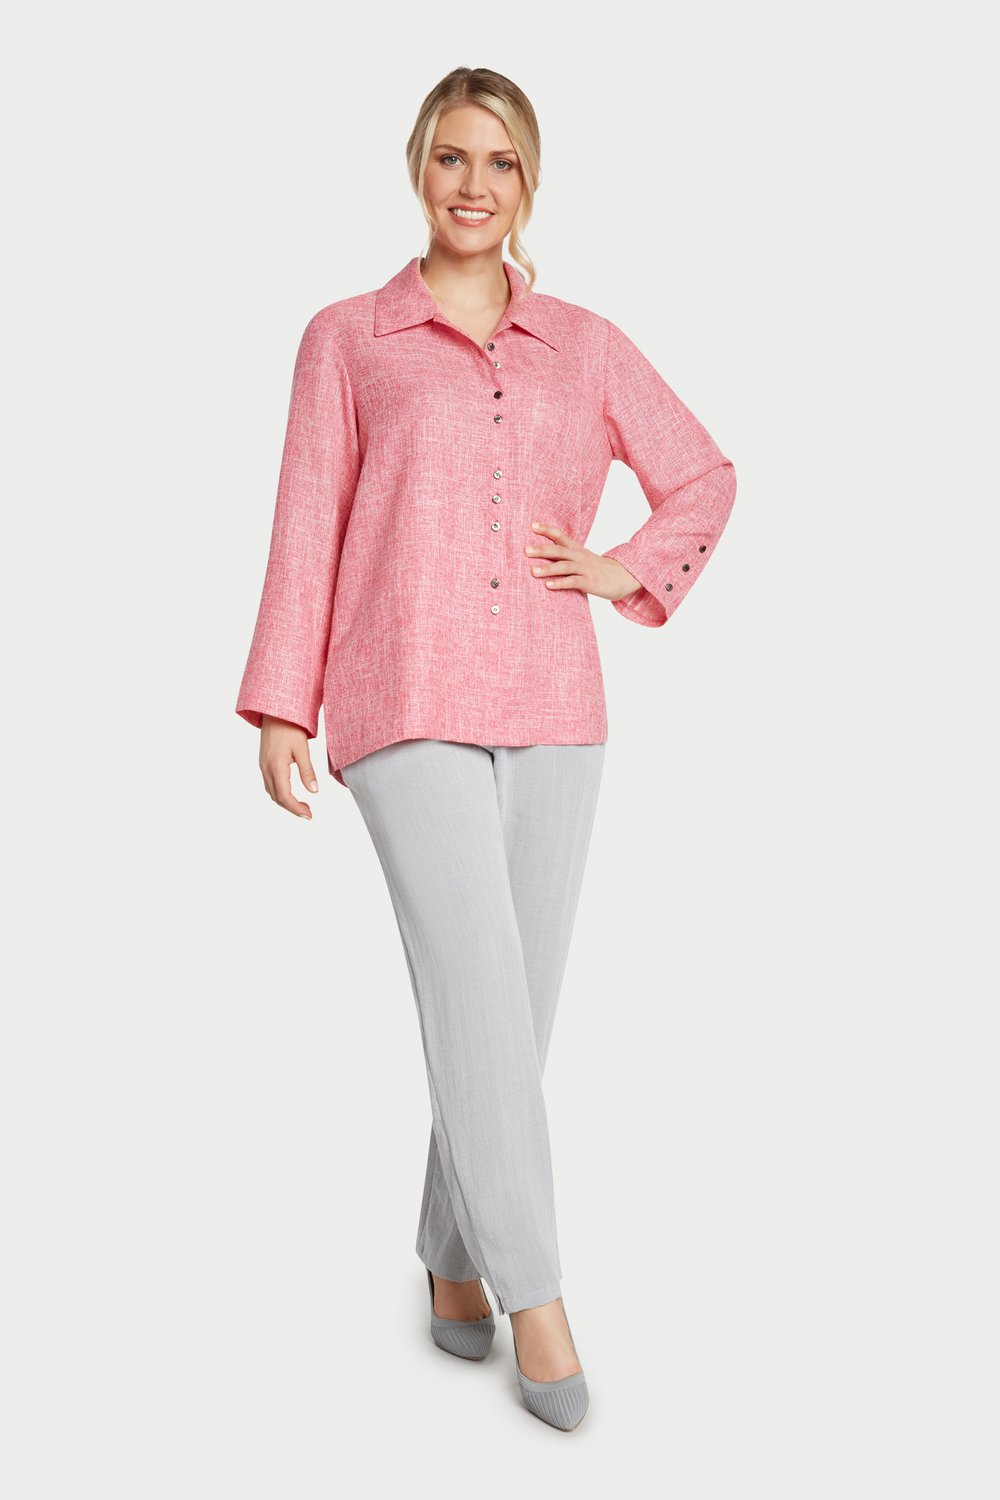 AA7059 - Fun Button Shirt Pink/White Heathered - JC07